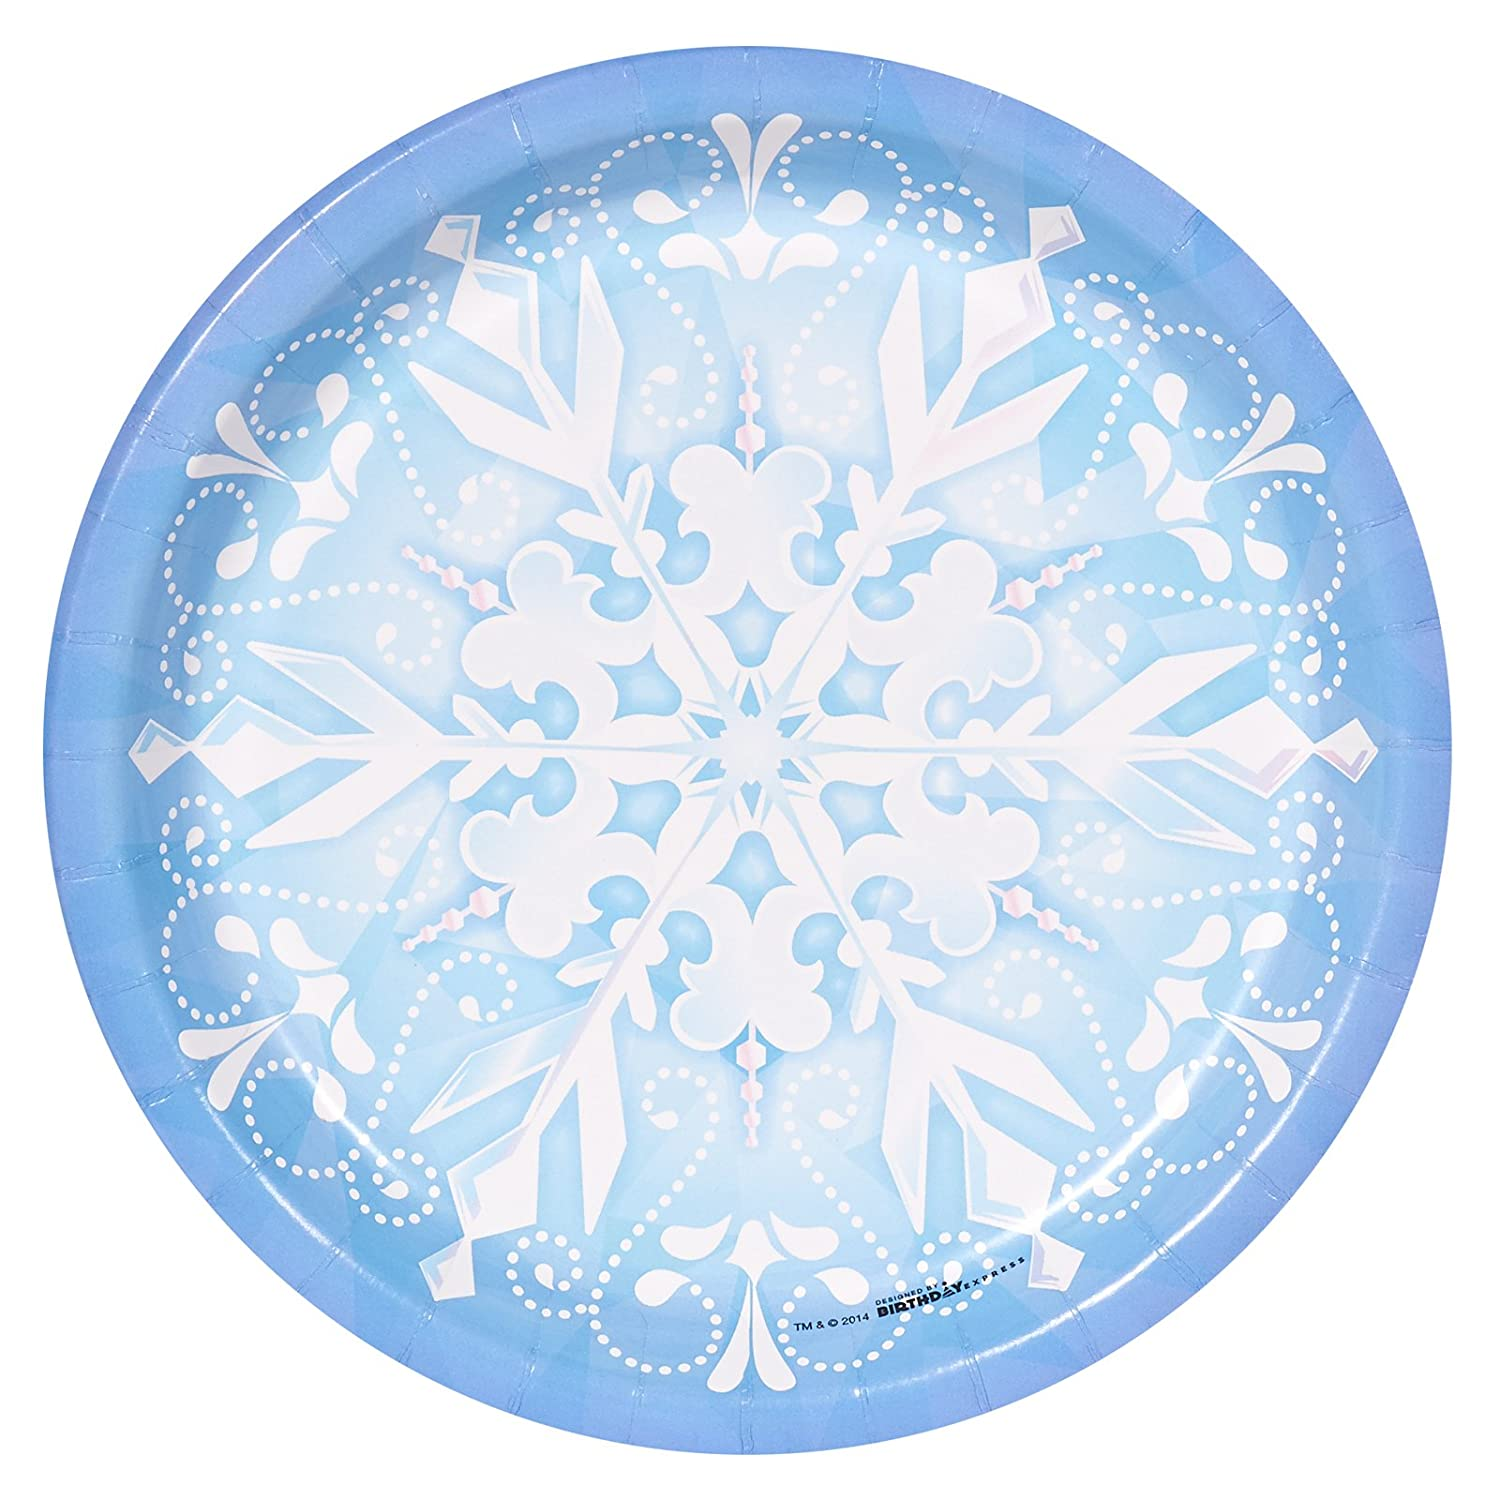 Amazon.com | Snowflake Winter Wonderland Christmas Party Supplies - Dinner Plates (8) Dinner Plates  sc 1 st  Amazon.com & Amazon.com | Snowflake Winter Wonderland Christmas Party Supplies ...